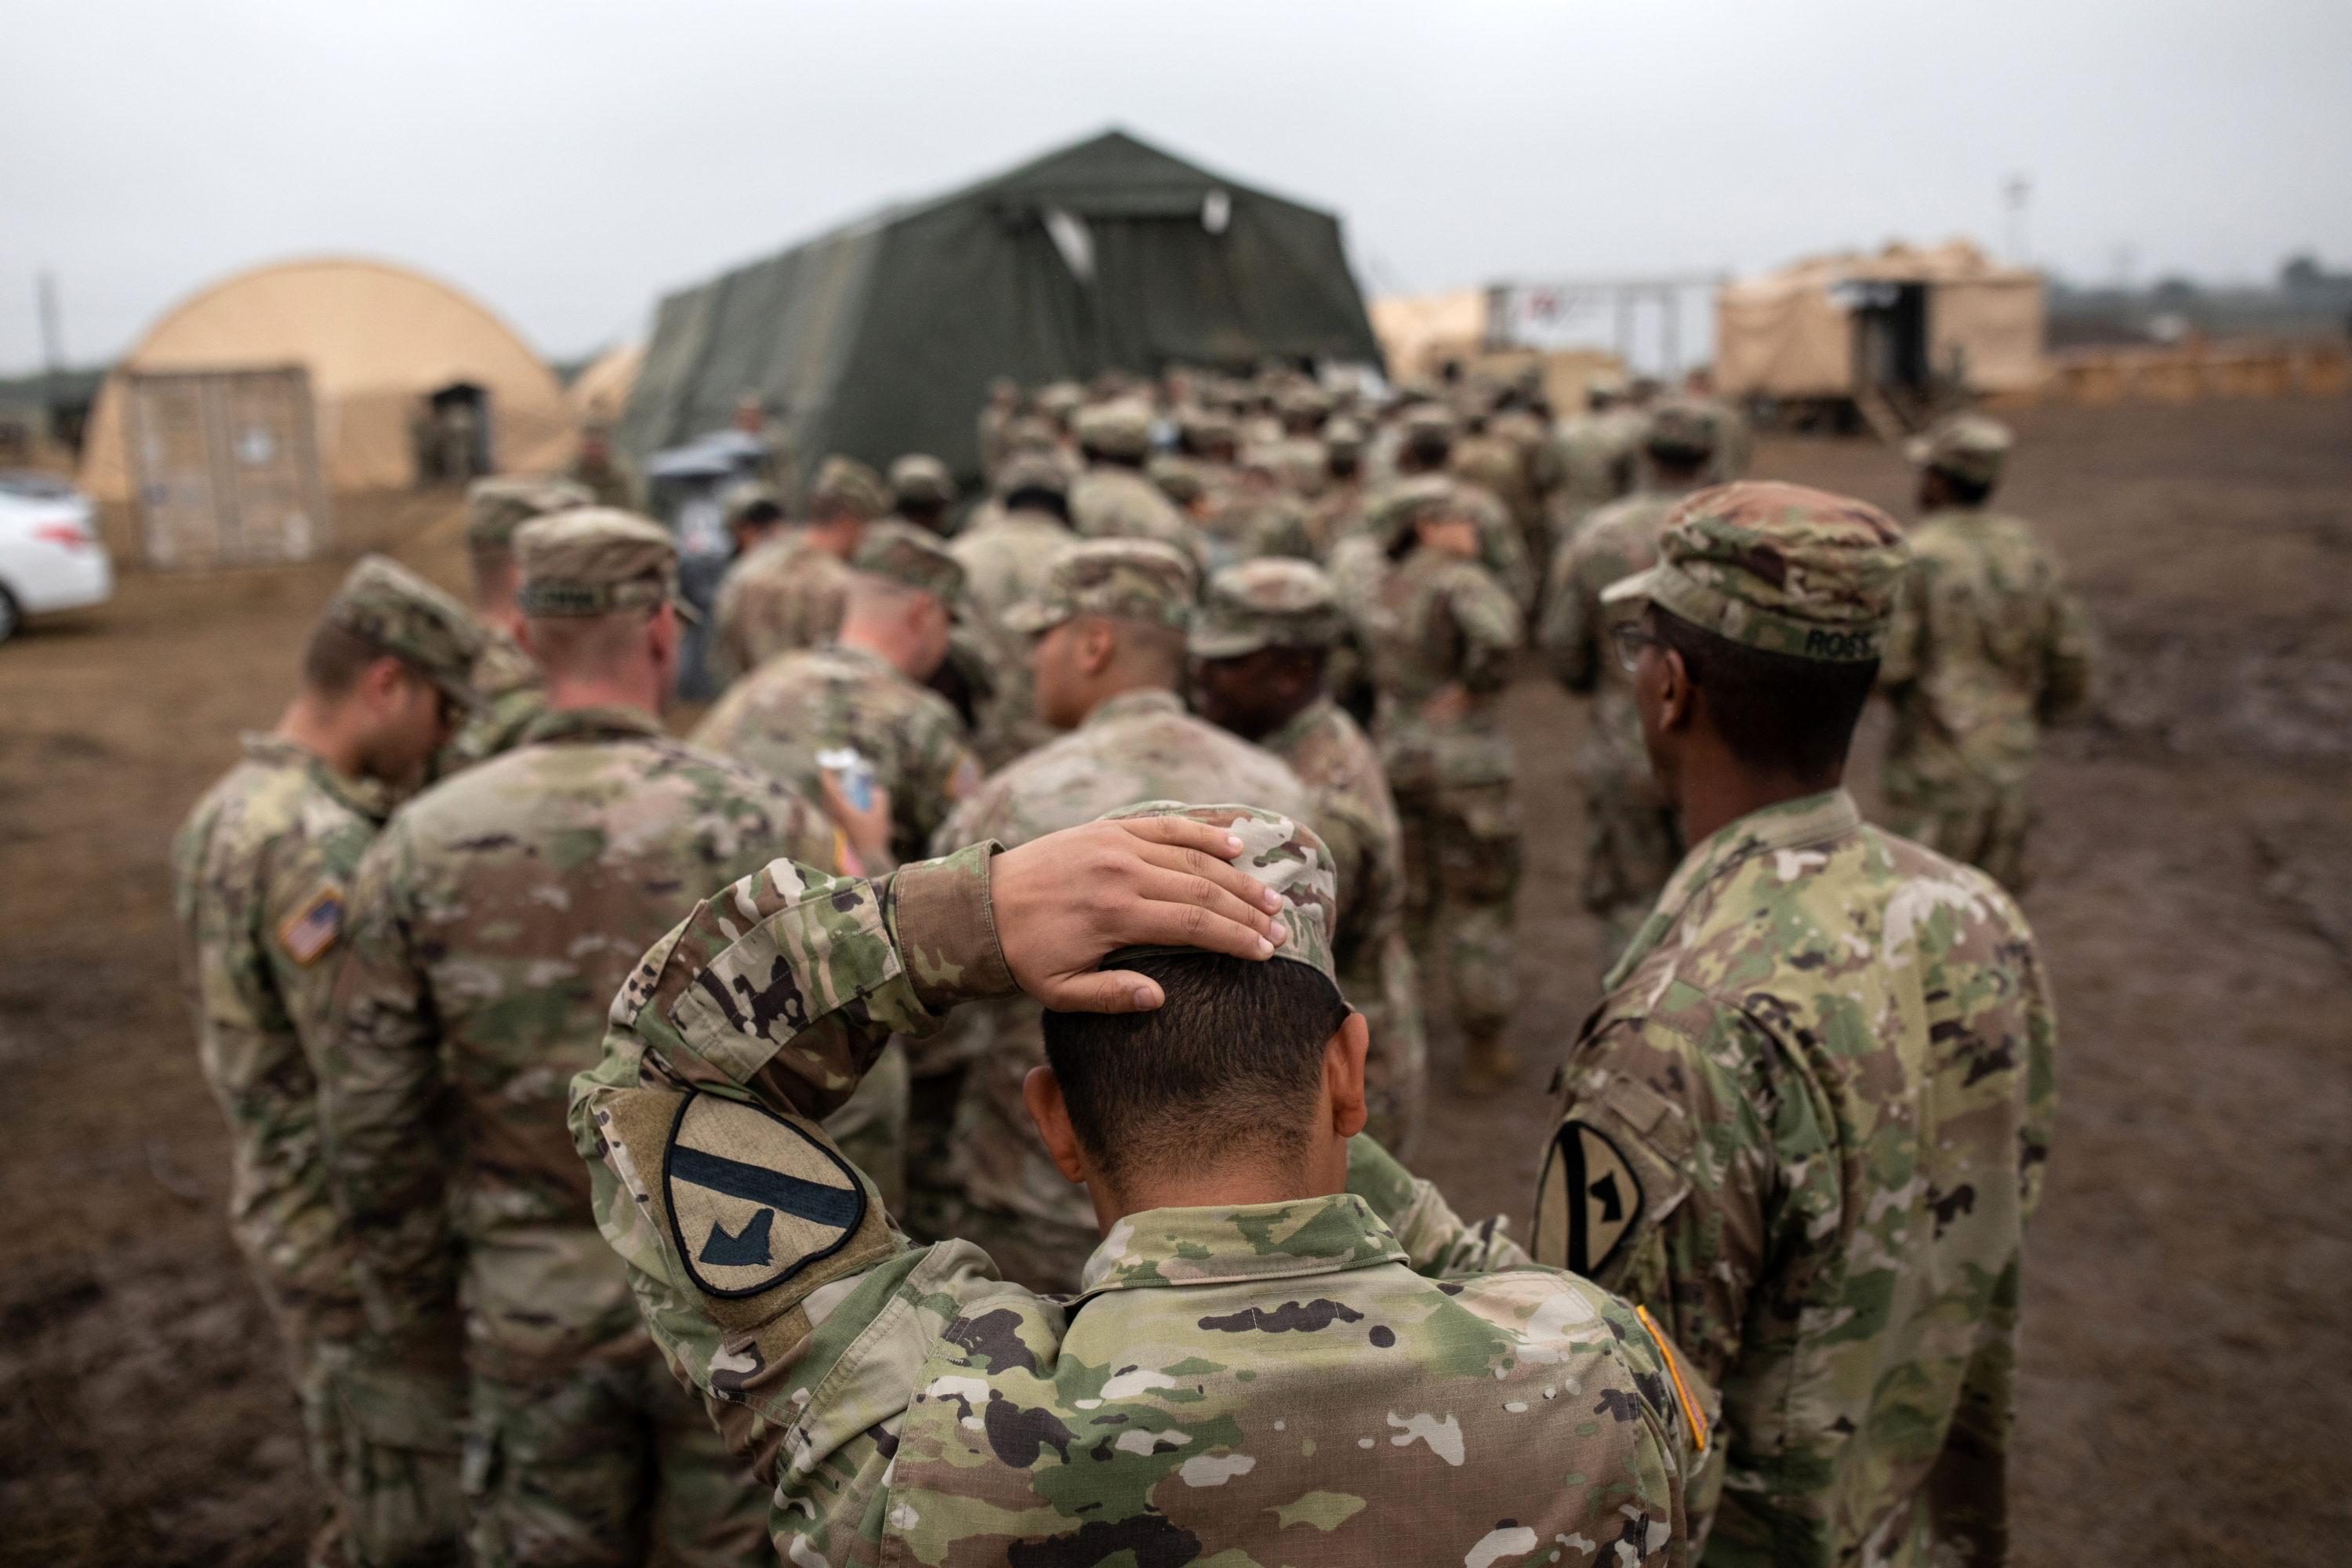 If the Military Pays for the Wall, What Military Stuff Gets Cut?